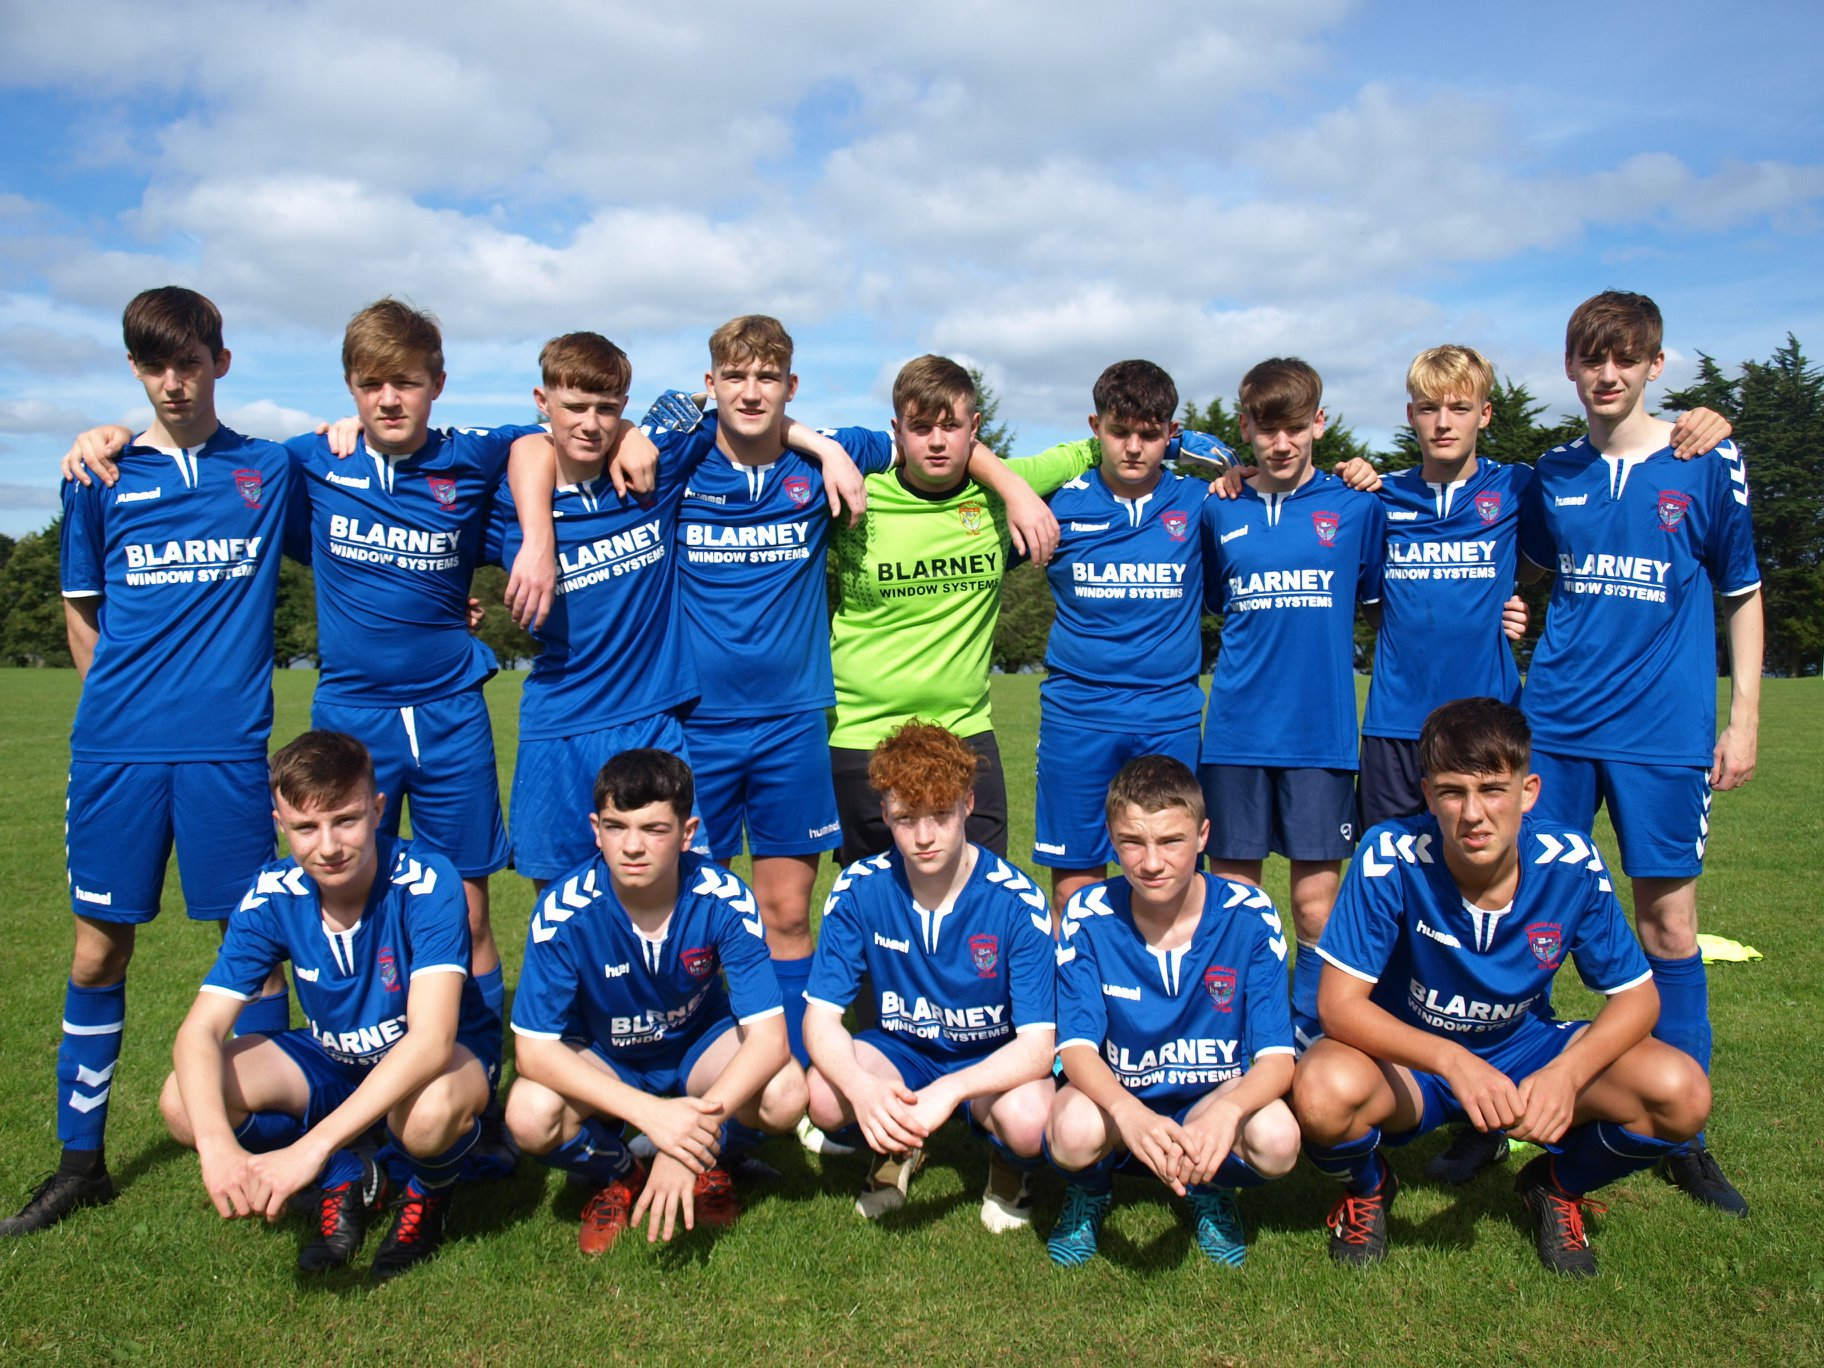 Corkbeg U-18s will play in the Cork Youths League once again this season